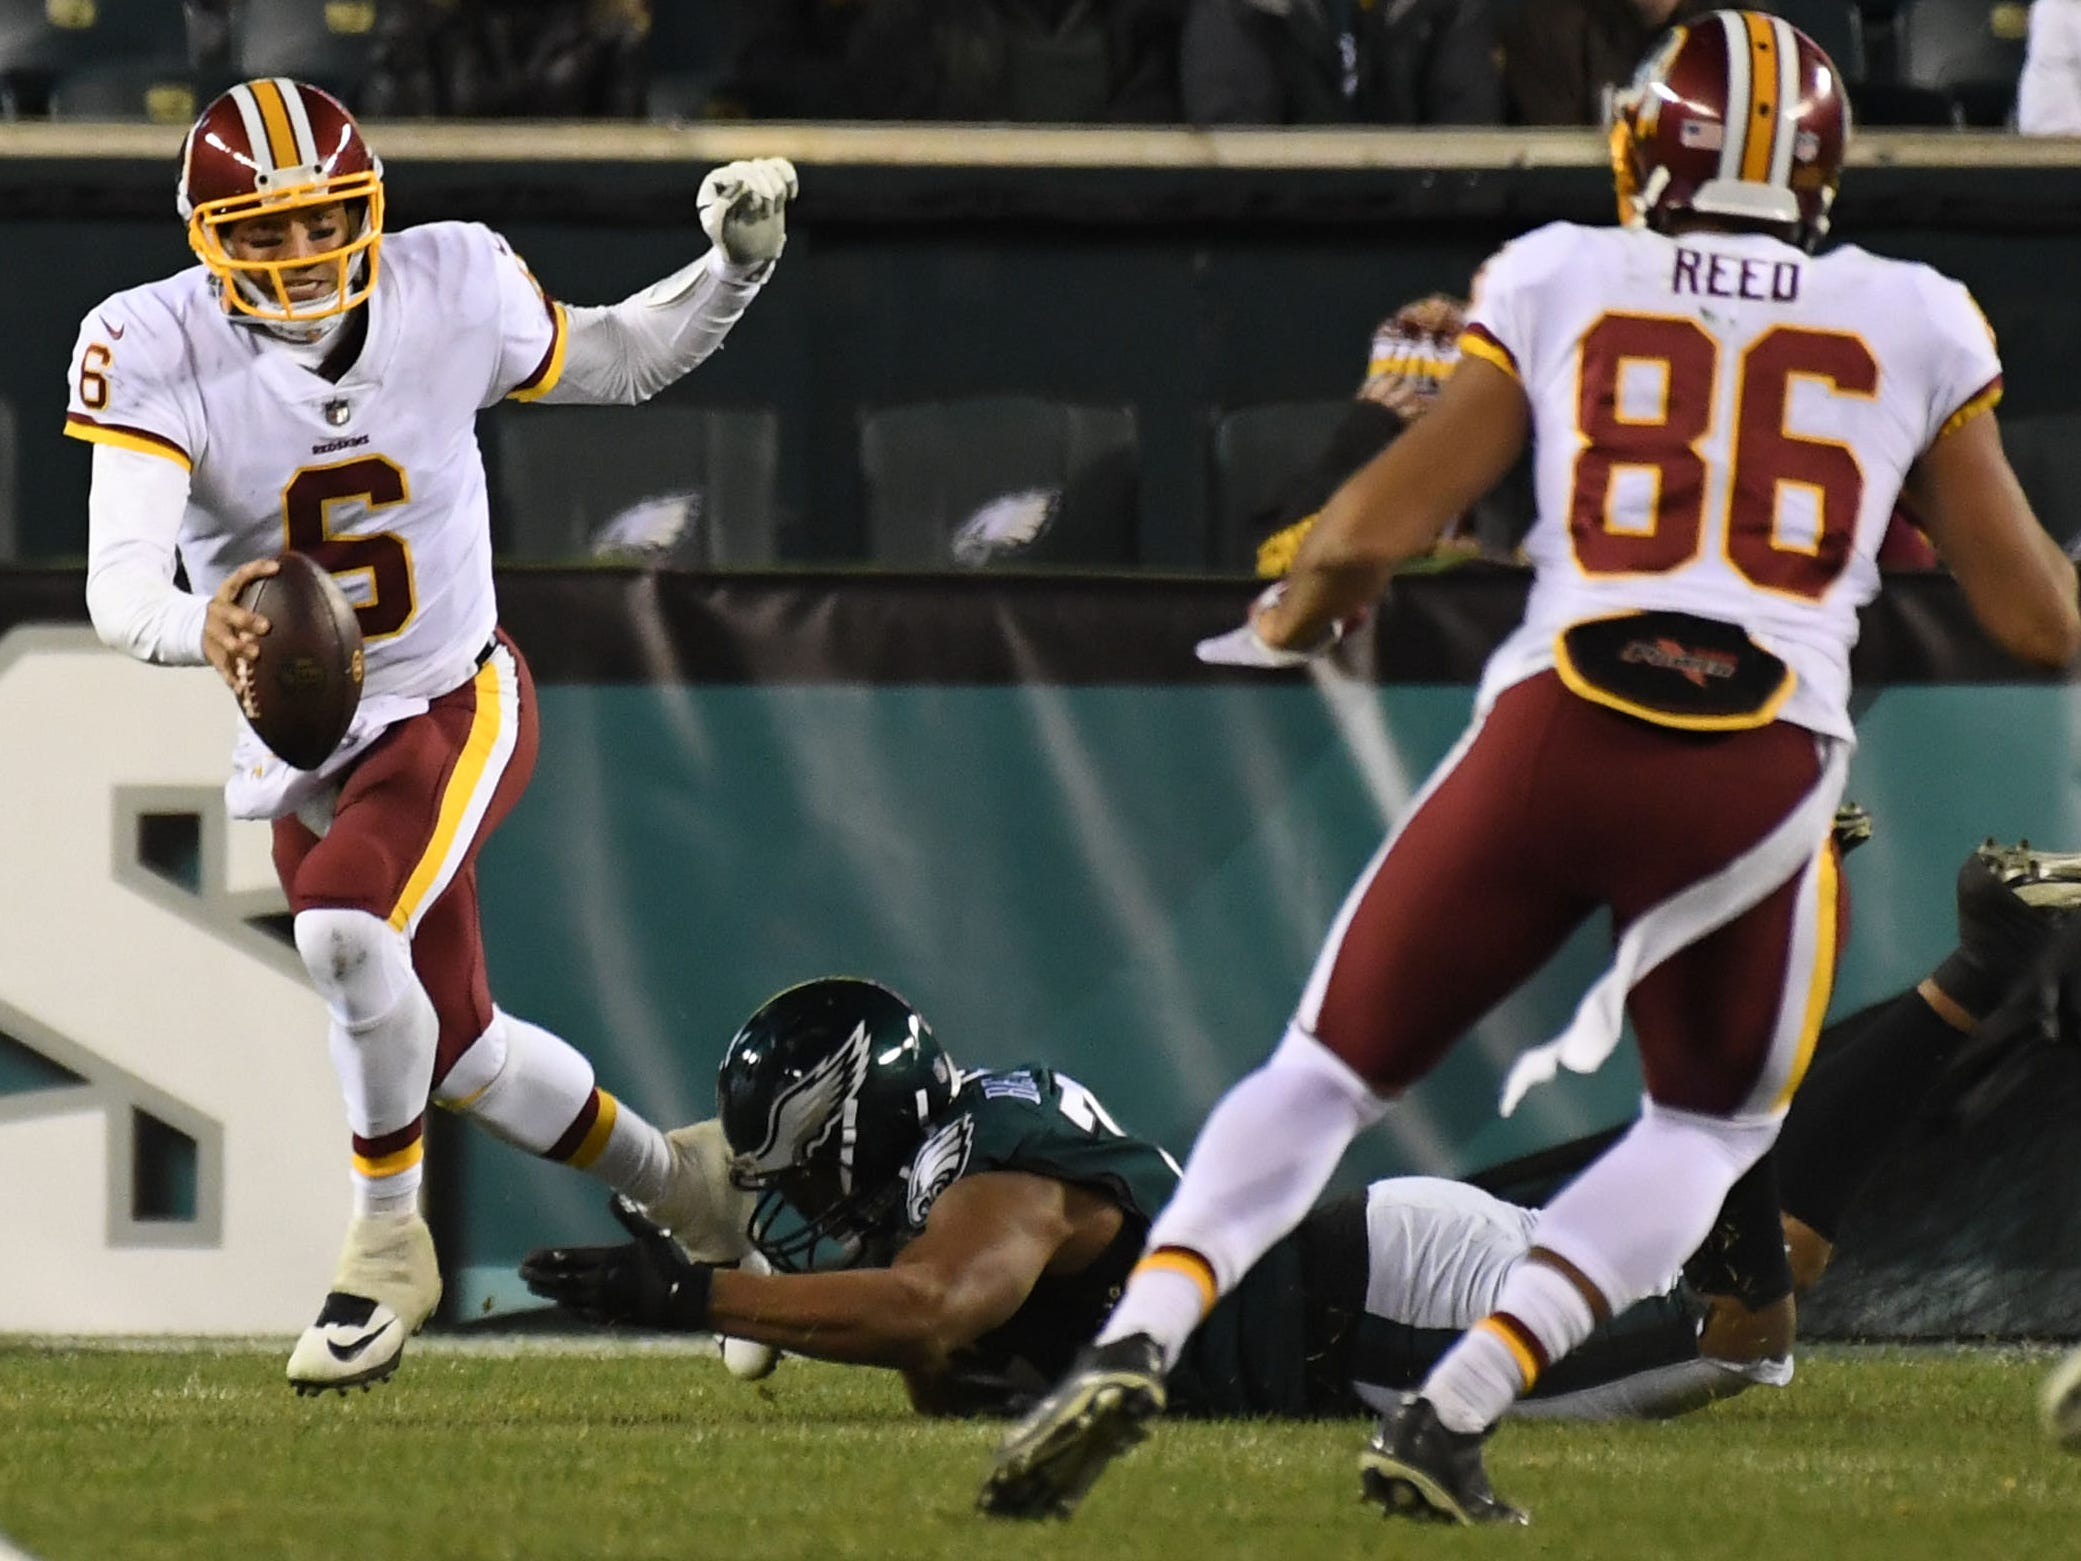 19. Redskins (15): Unwise to entrust too much hope with Mark Sanchez under best of circumstances. Best thing he can provide now is needed continuity under center.